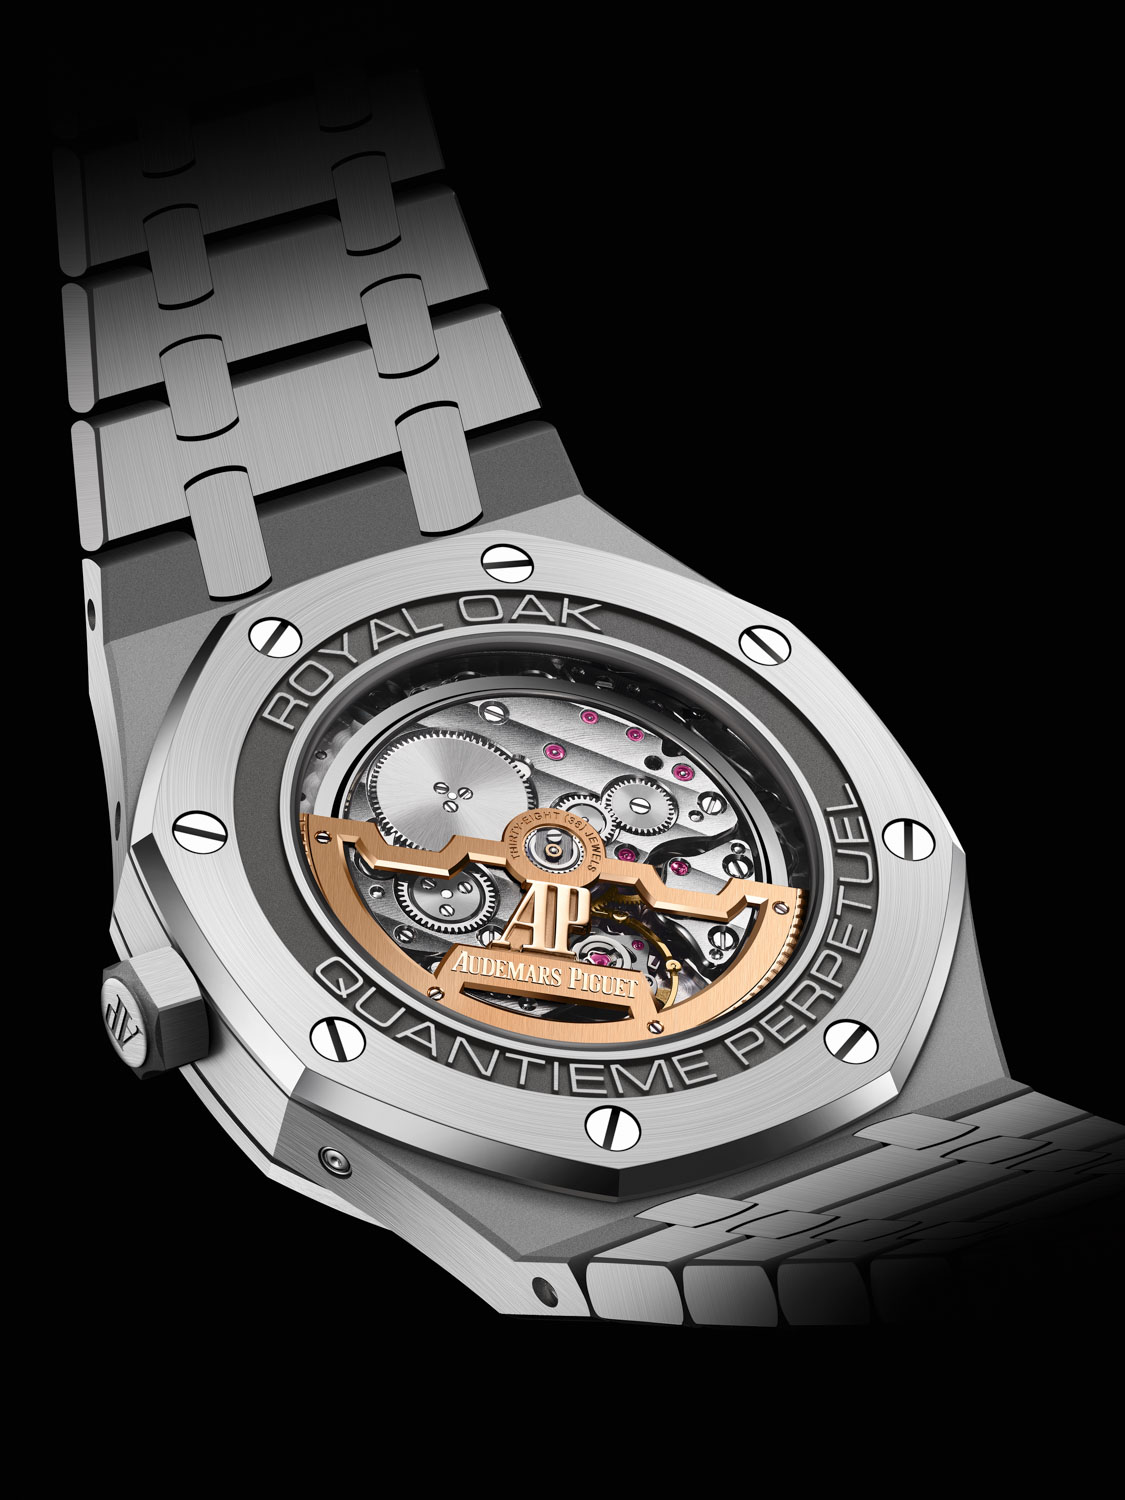 Caseback view of the 2021 Royal Oak Perpetual Calendar in Titanium, showing off the self-winding Calibre 5134 within